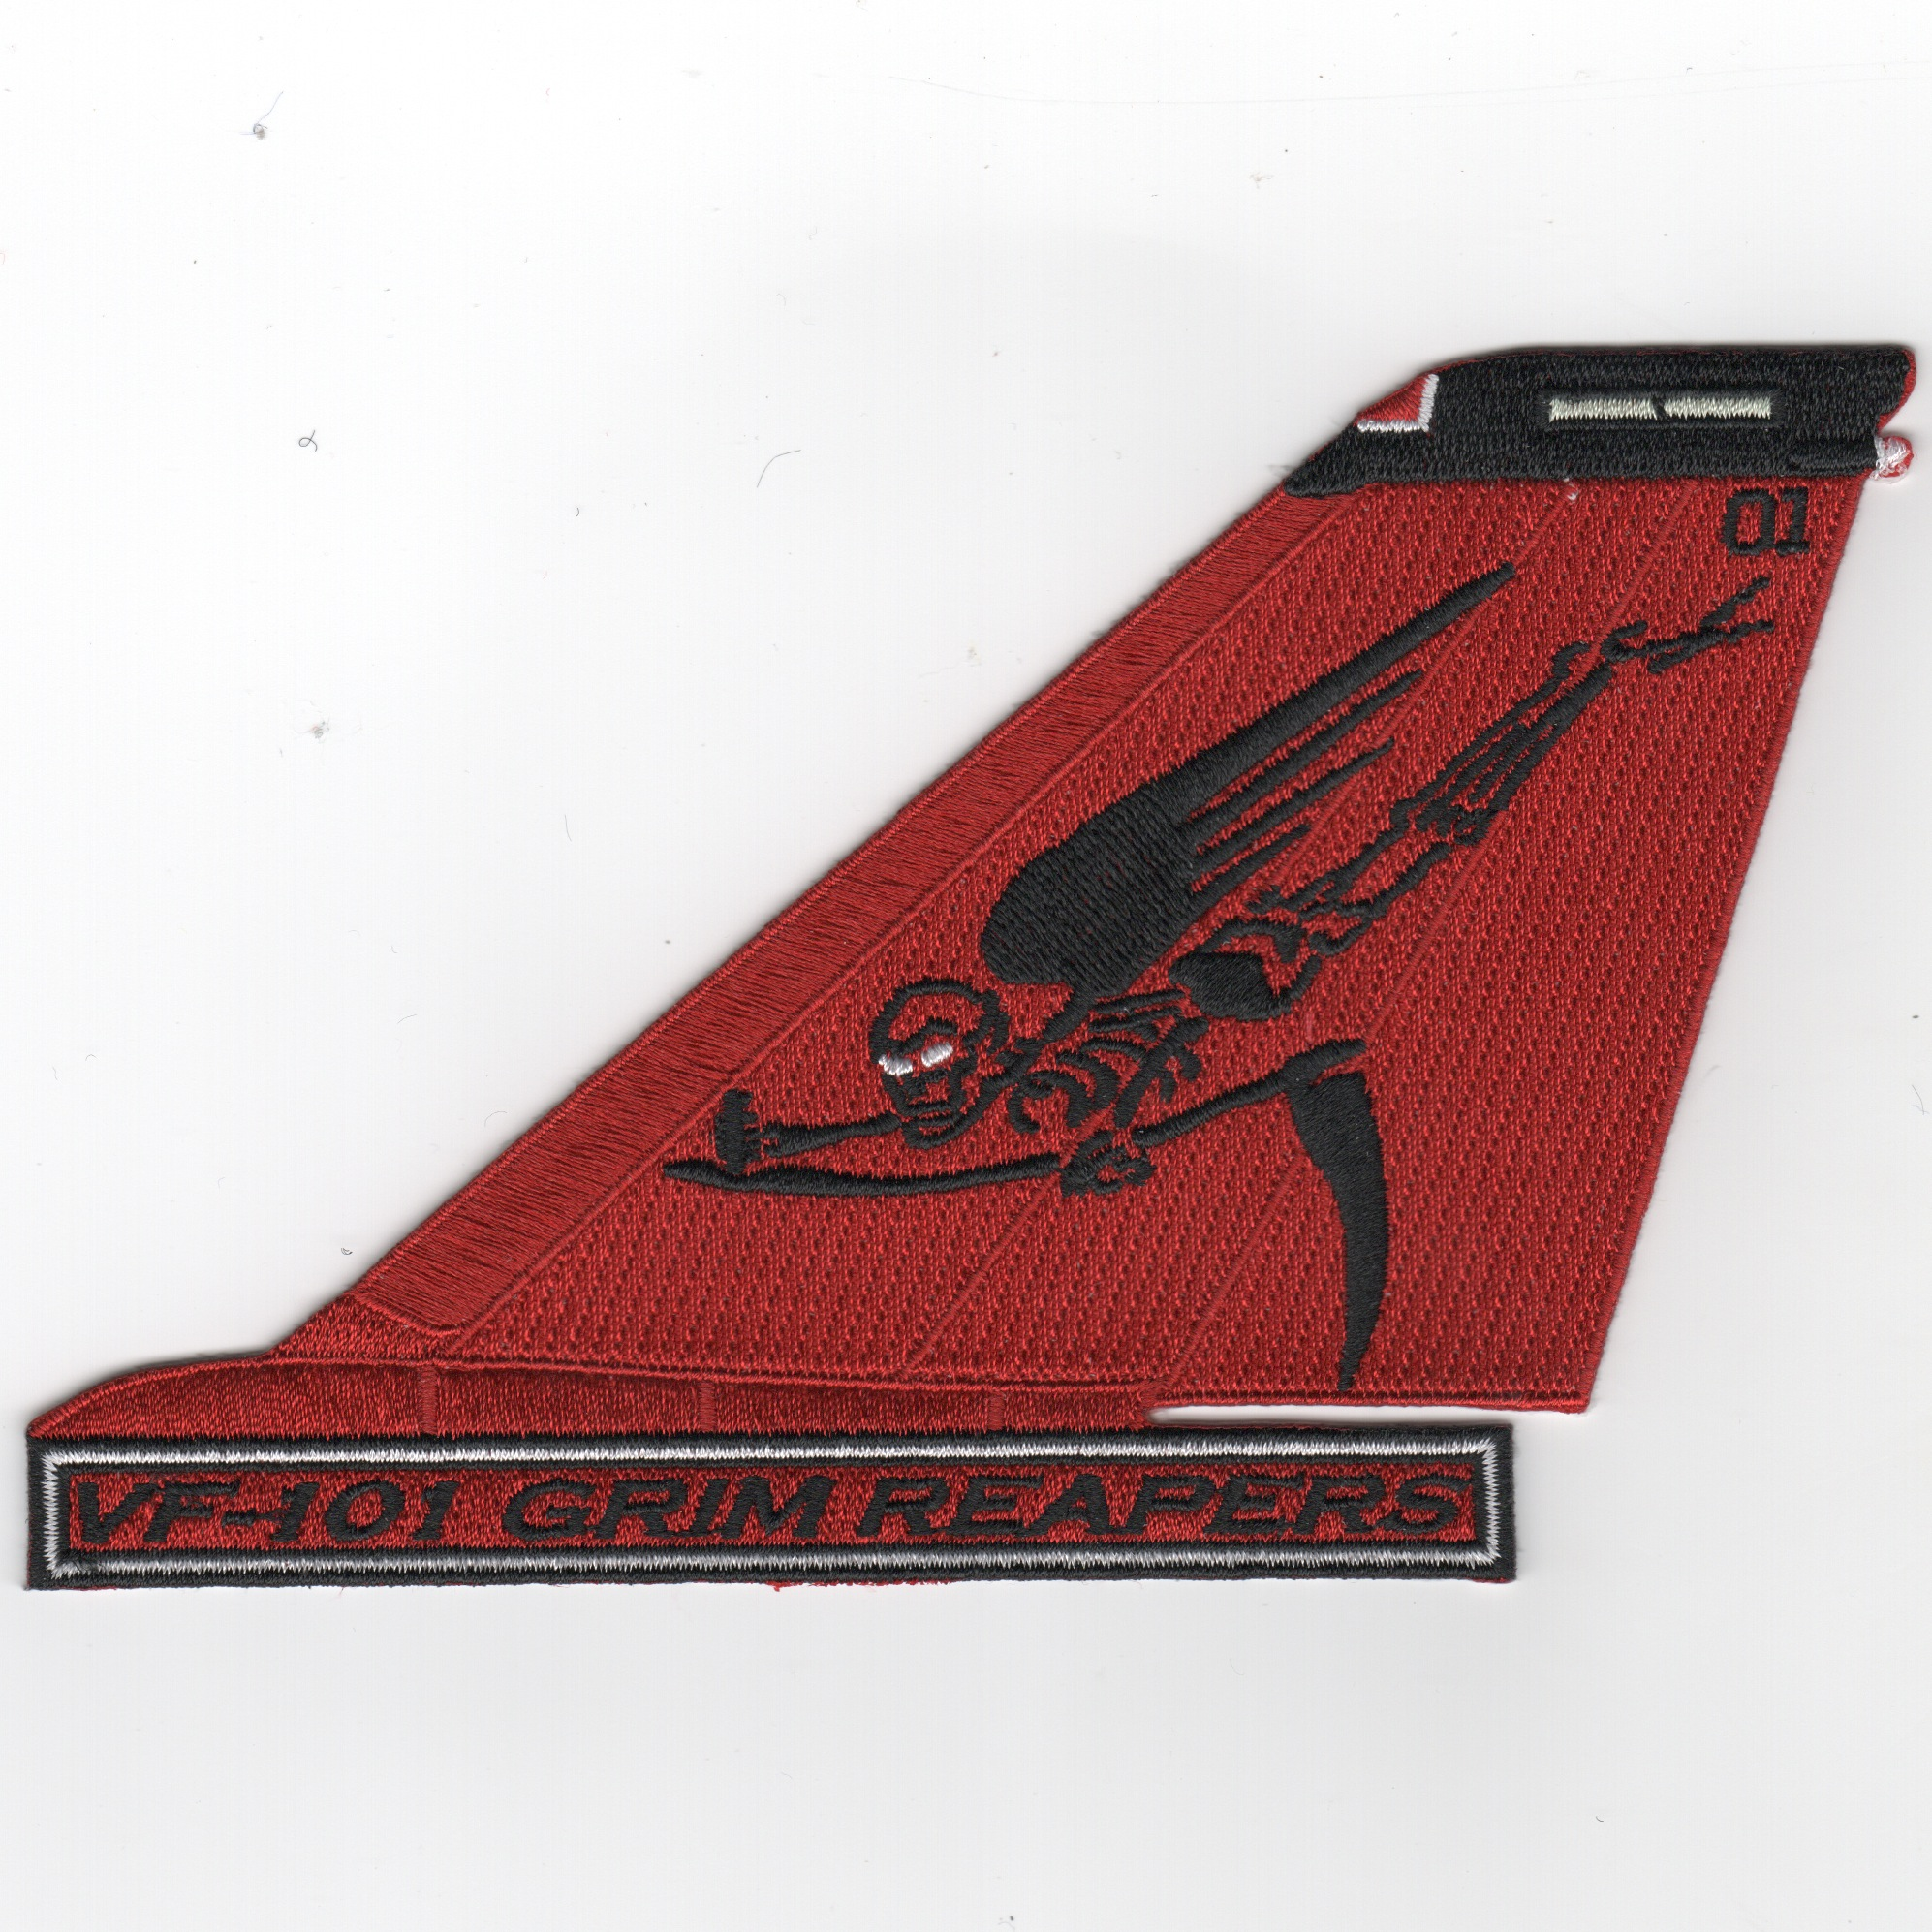 VF-101 F-14 Tail (All Red/Flying Moe/Text)